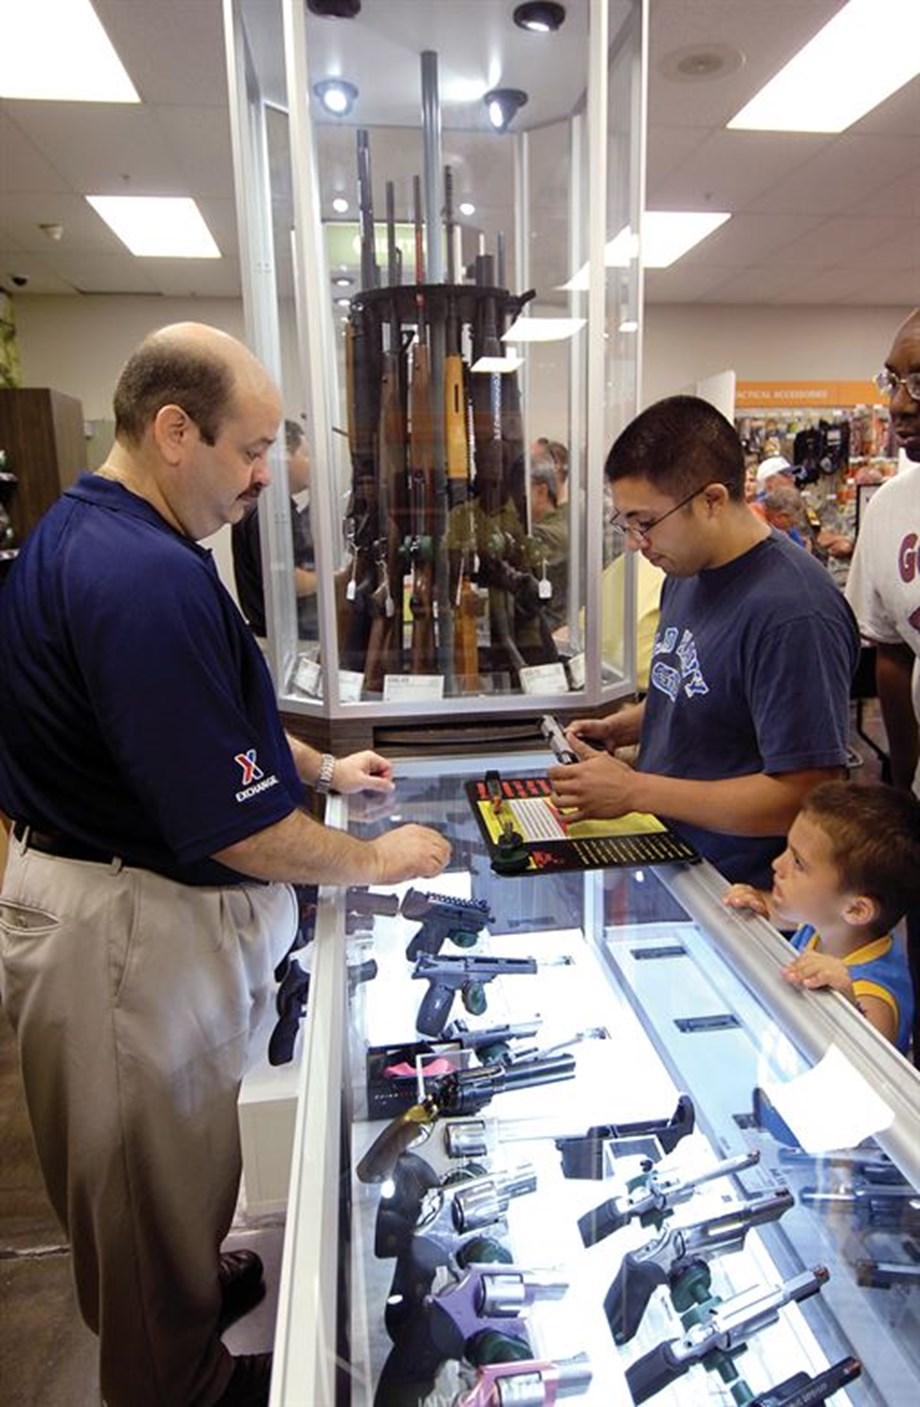 Citi group put restrictions on retailers to sell firearms